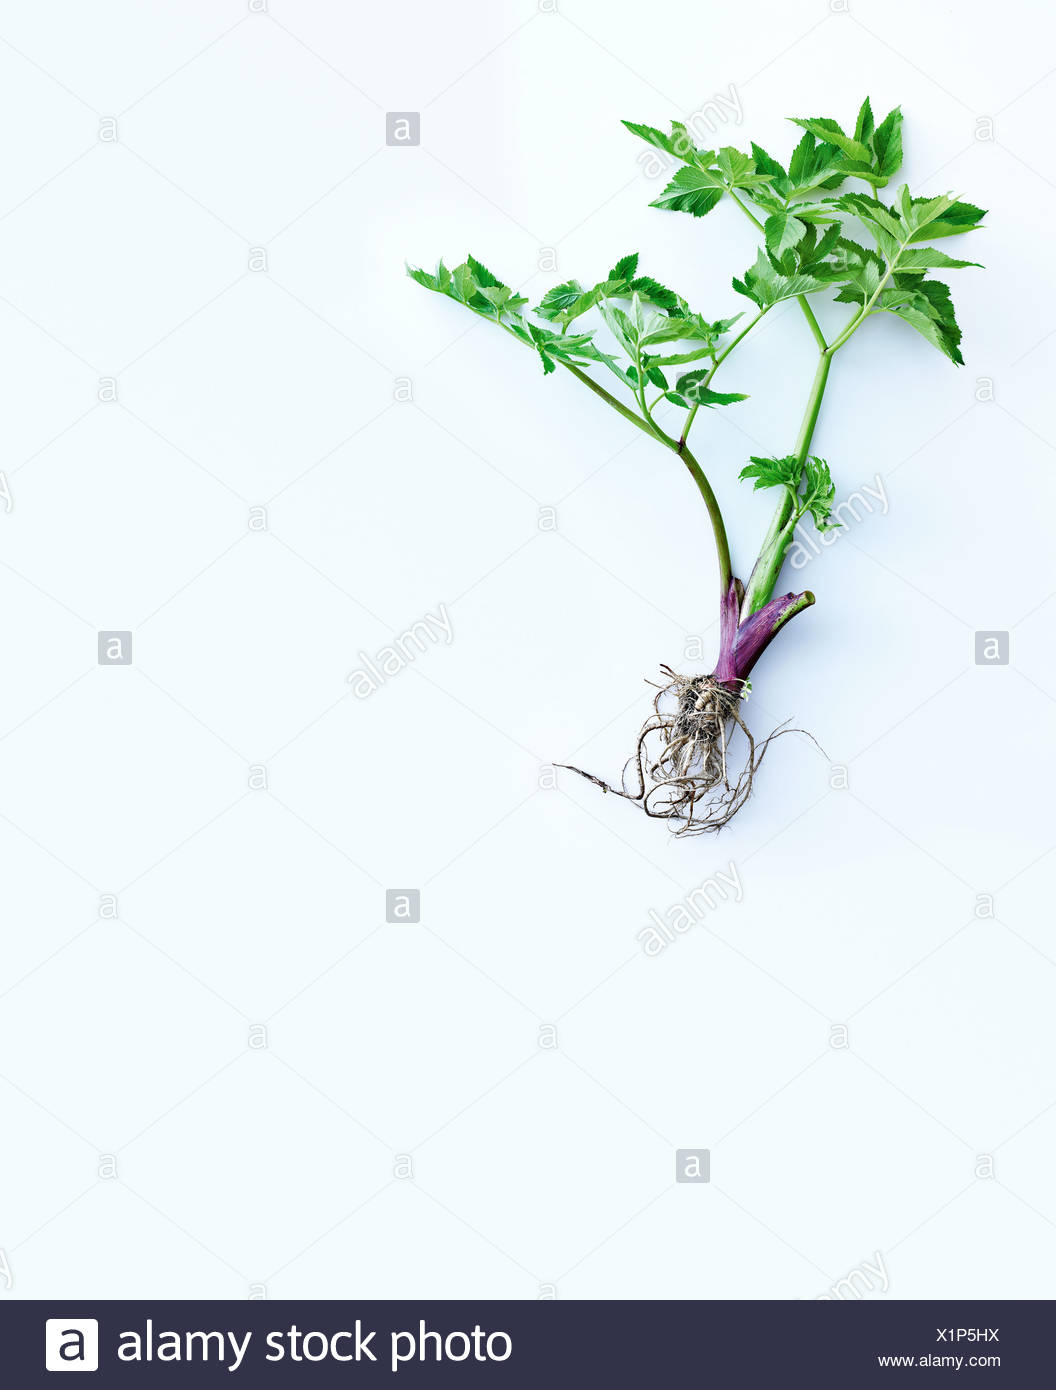 Herb stems, leaves and roots - Stock Image